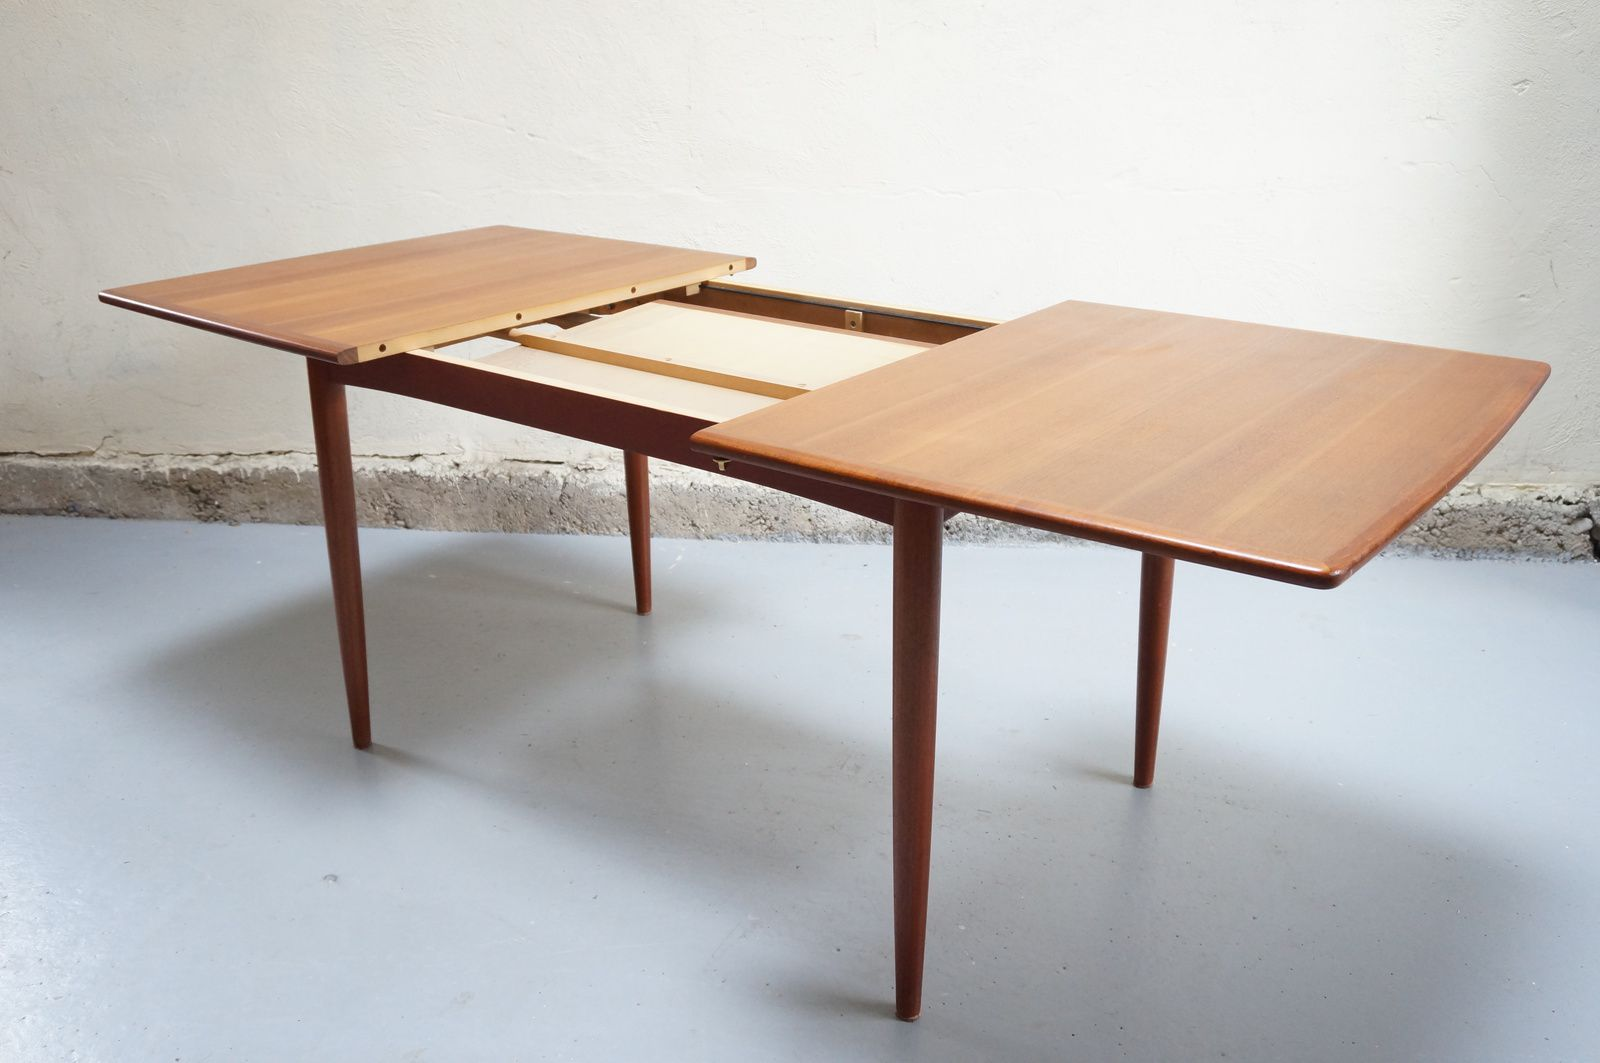 Vendue table manger scandinave teck design danois for Table de salle a manger design scandinave vispa